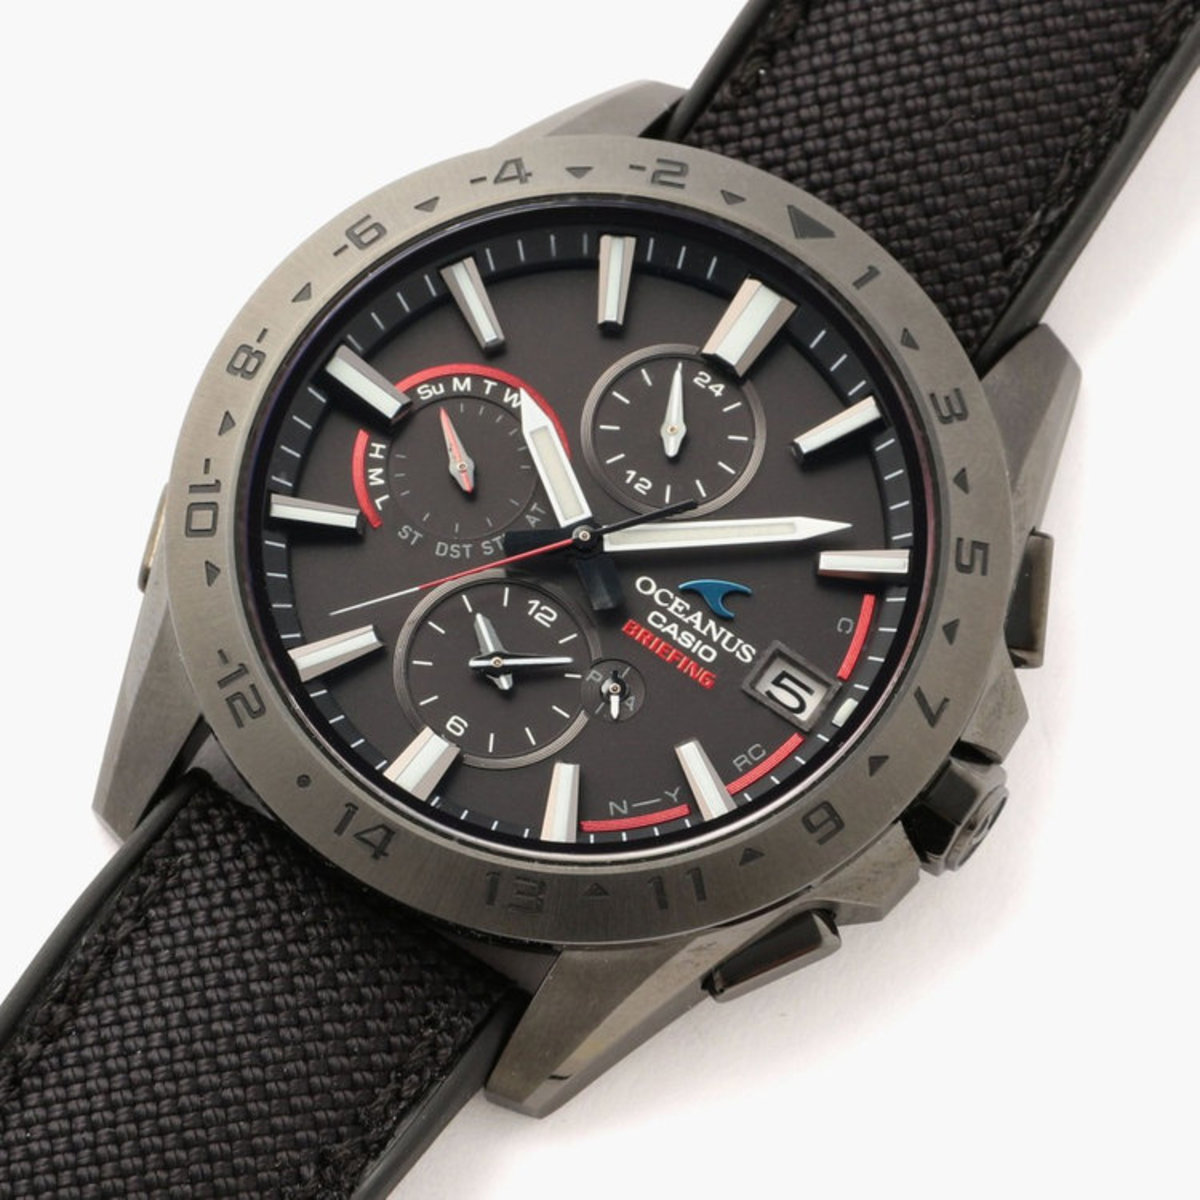 Casio Oceanus x Briefing